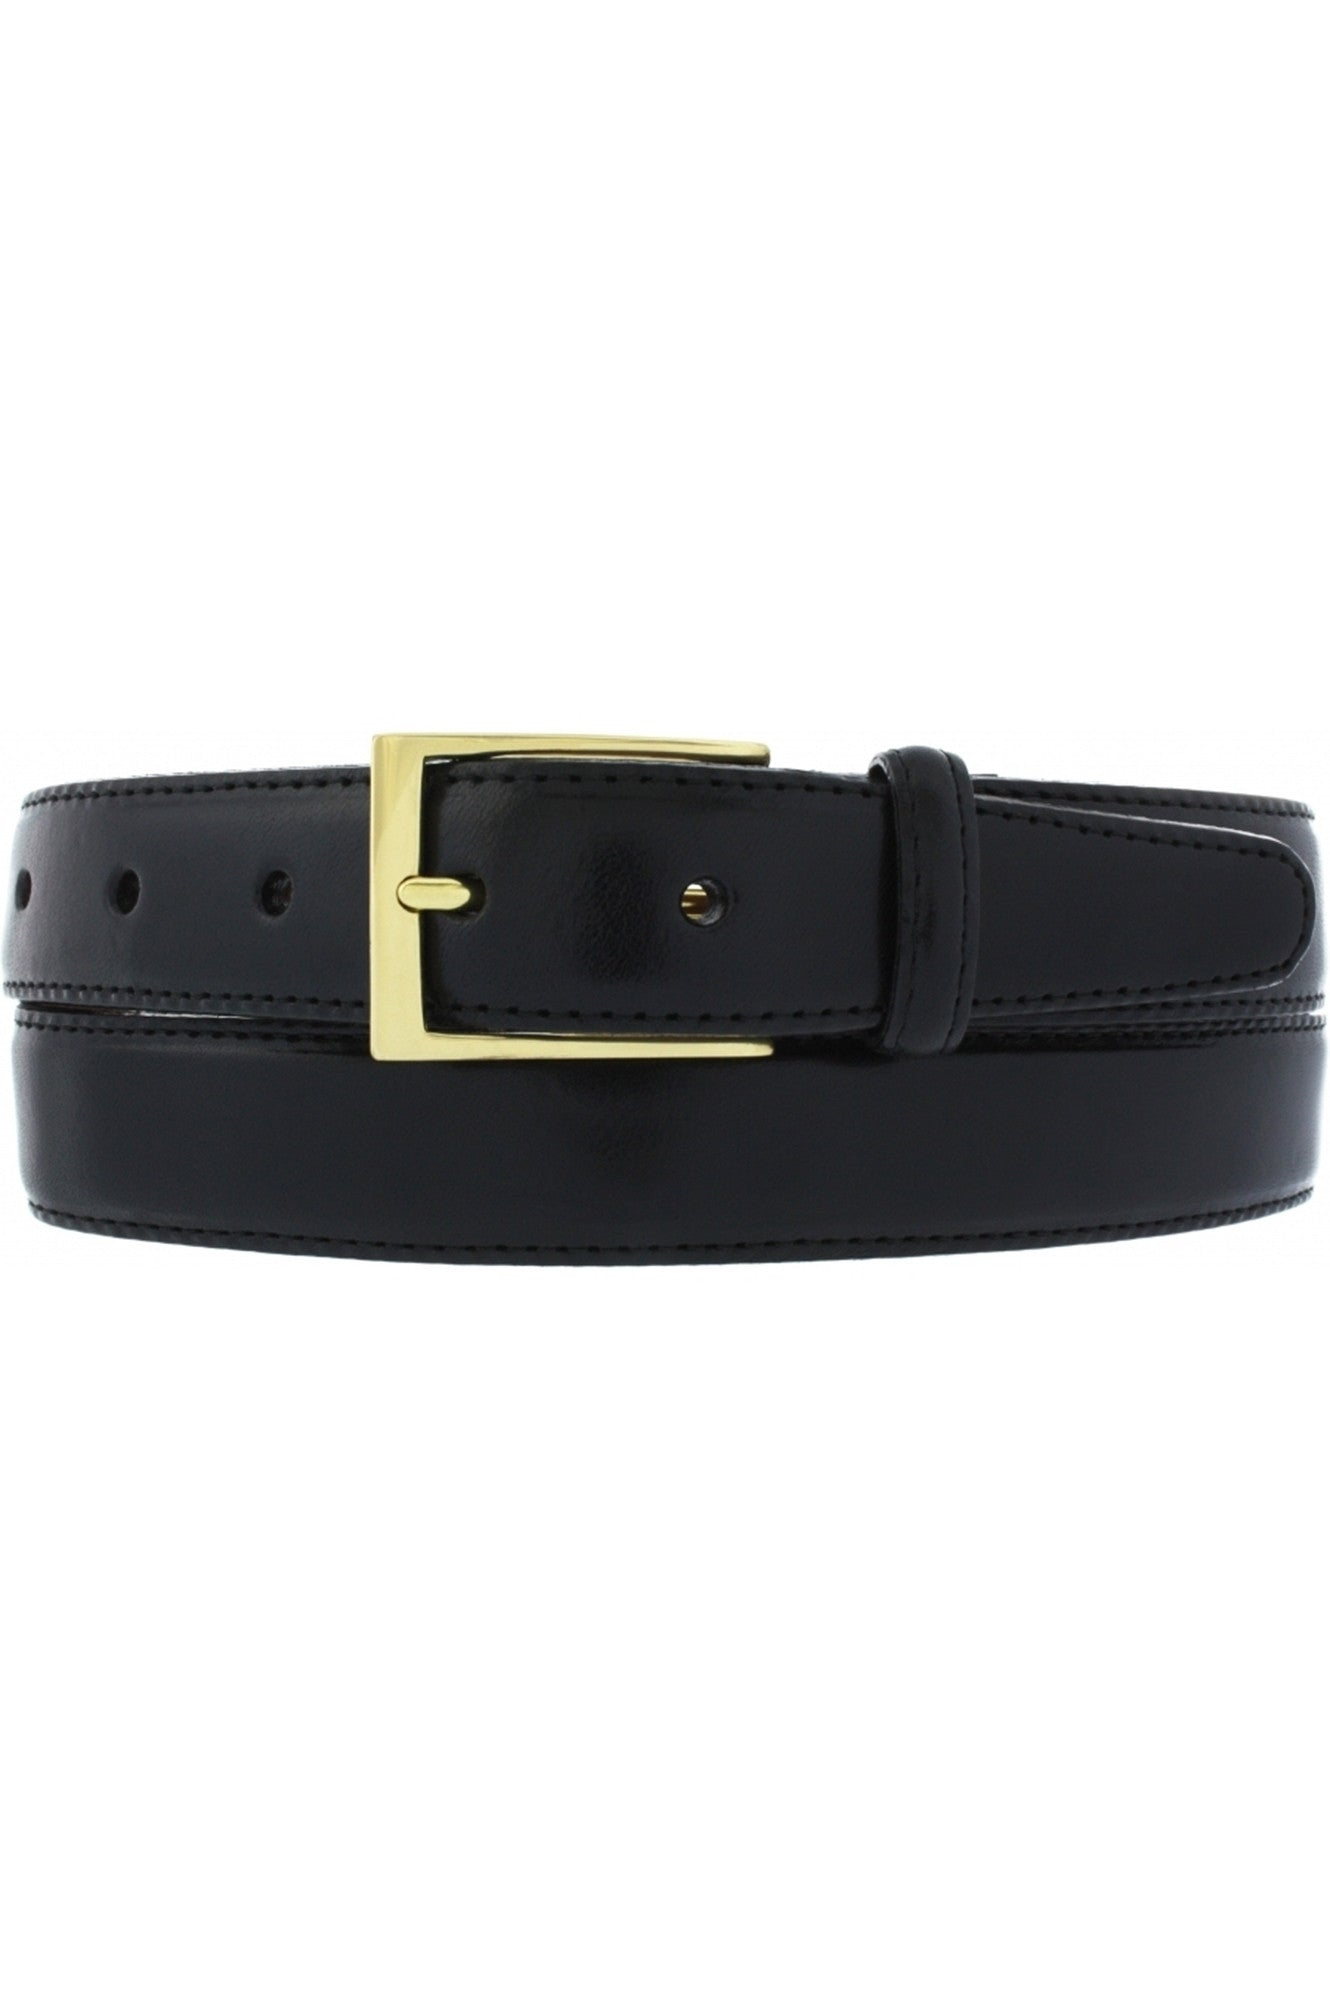 mens black leather bely, leather belts for men, brighton belts, brighton leather